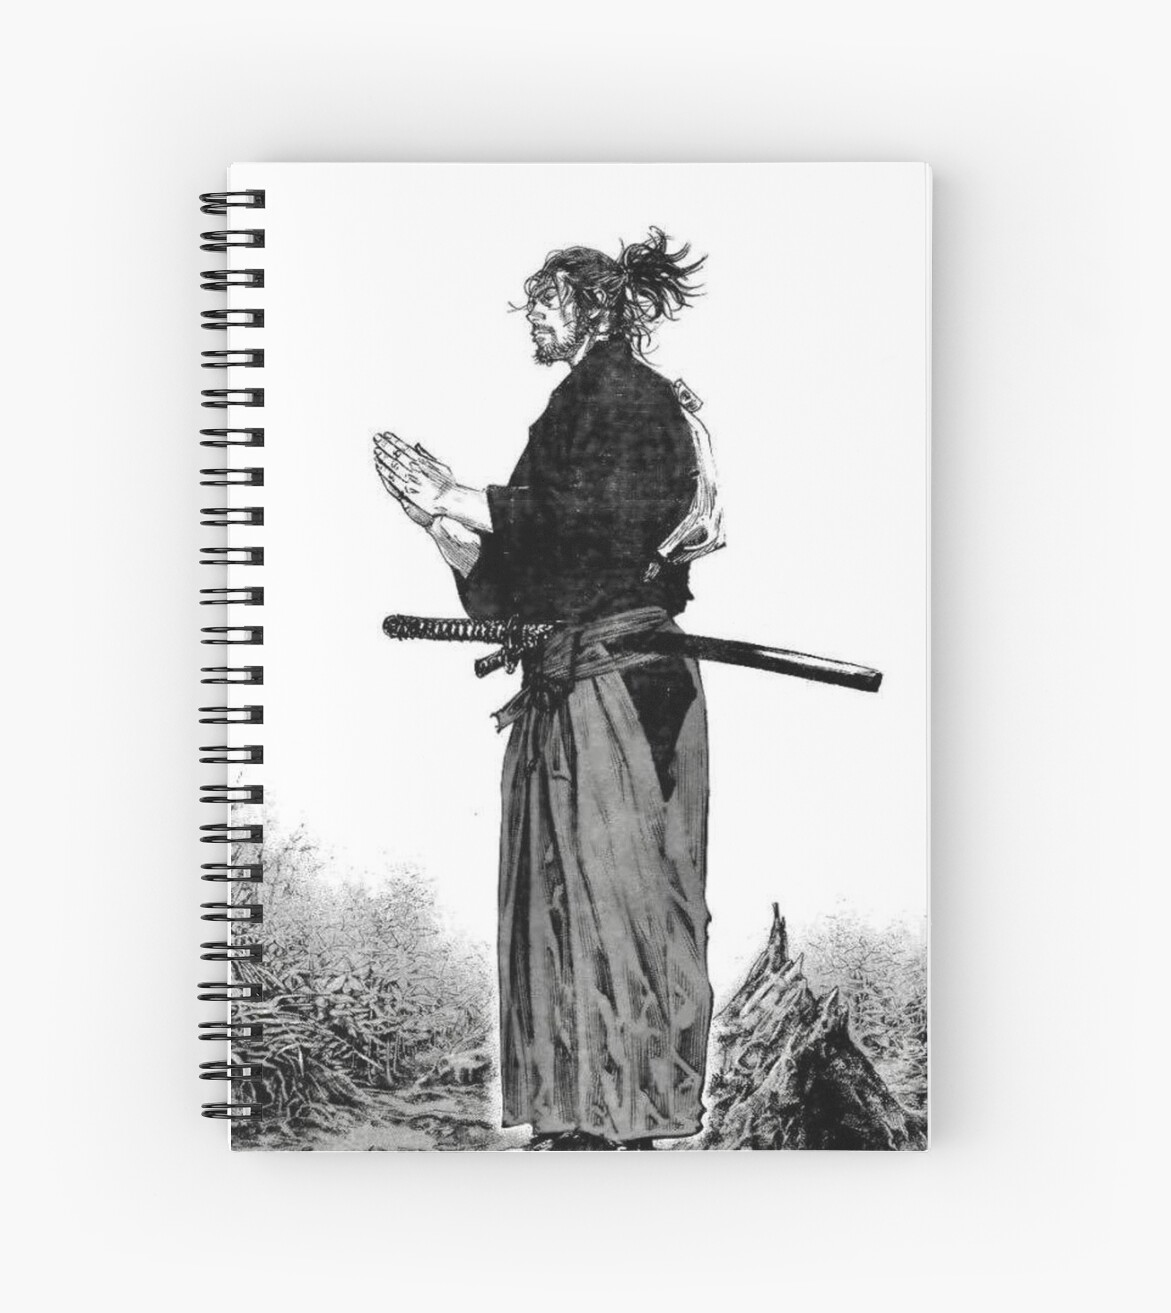 "Manga Samurai Spiral Notebooks By Jiggymiggy: Manga Samurai"" Spiral Notebooks By JiggyMiggy"